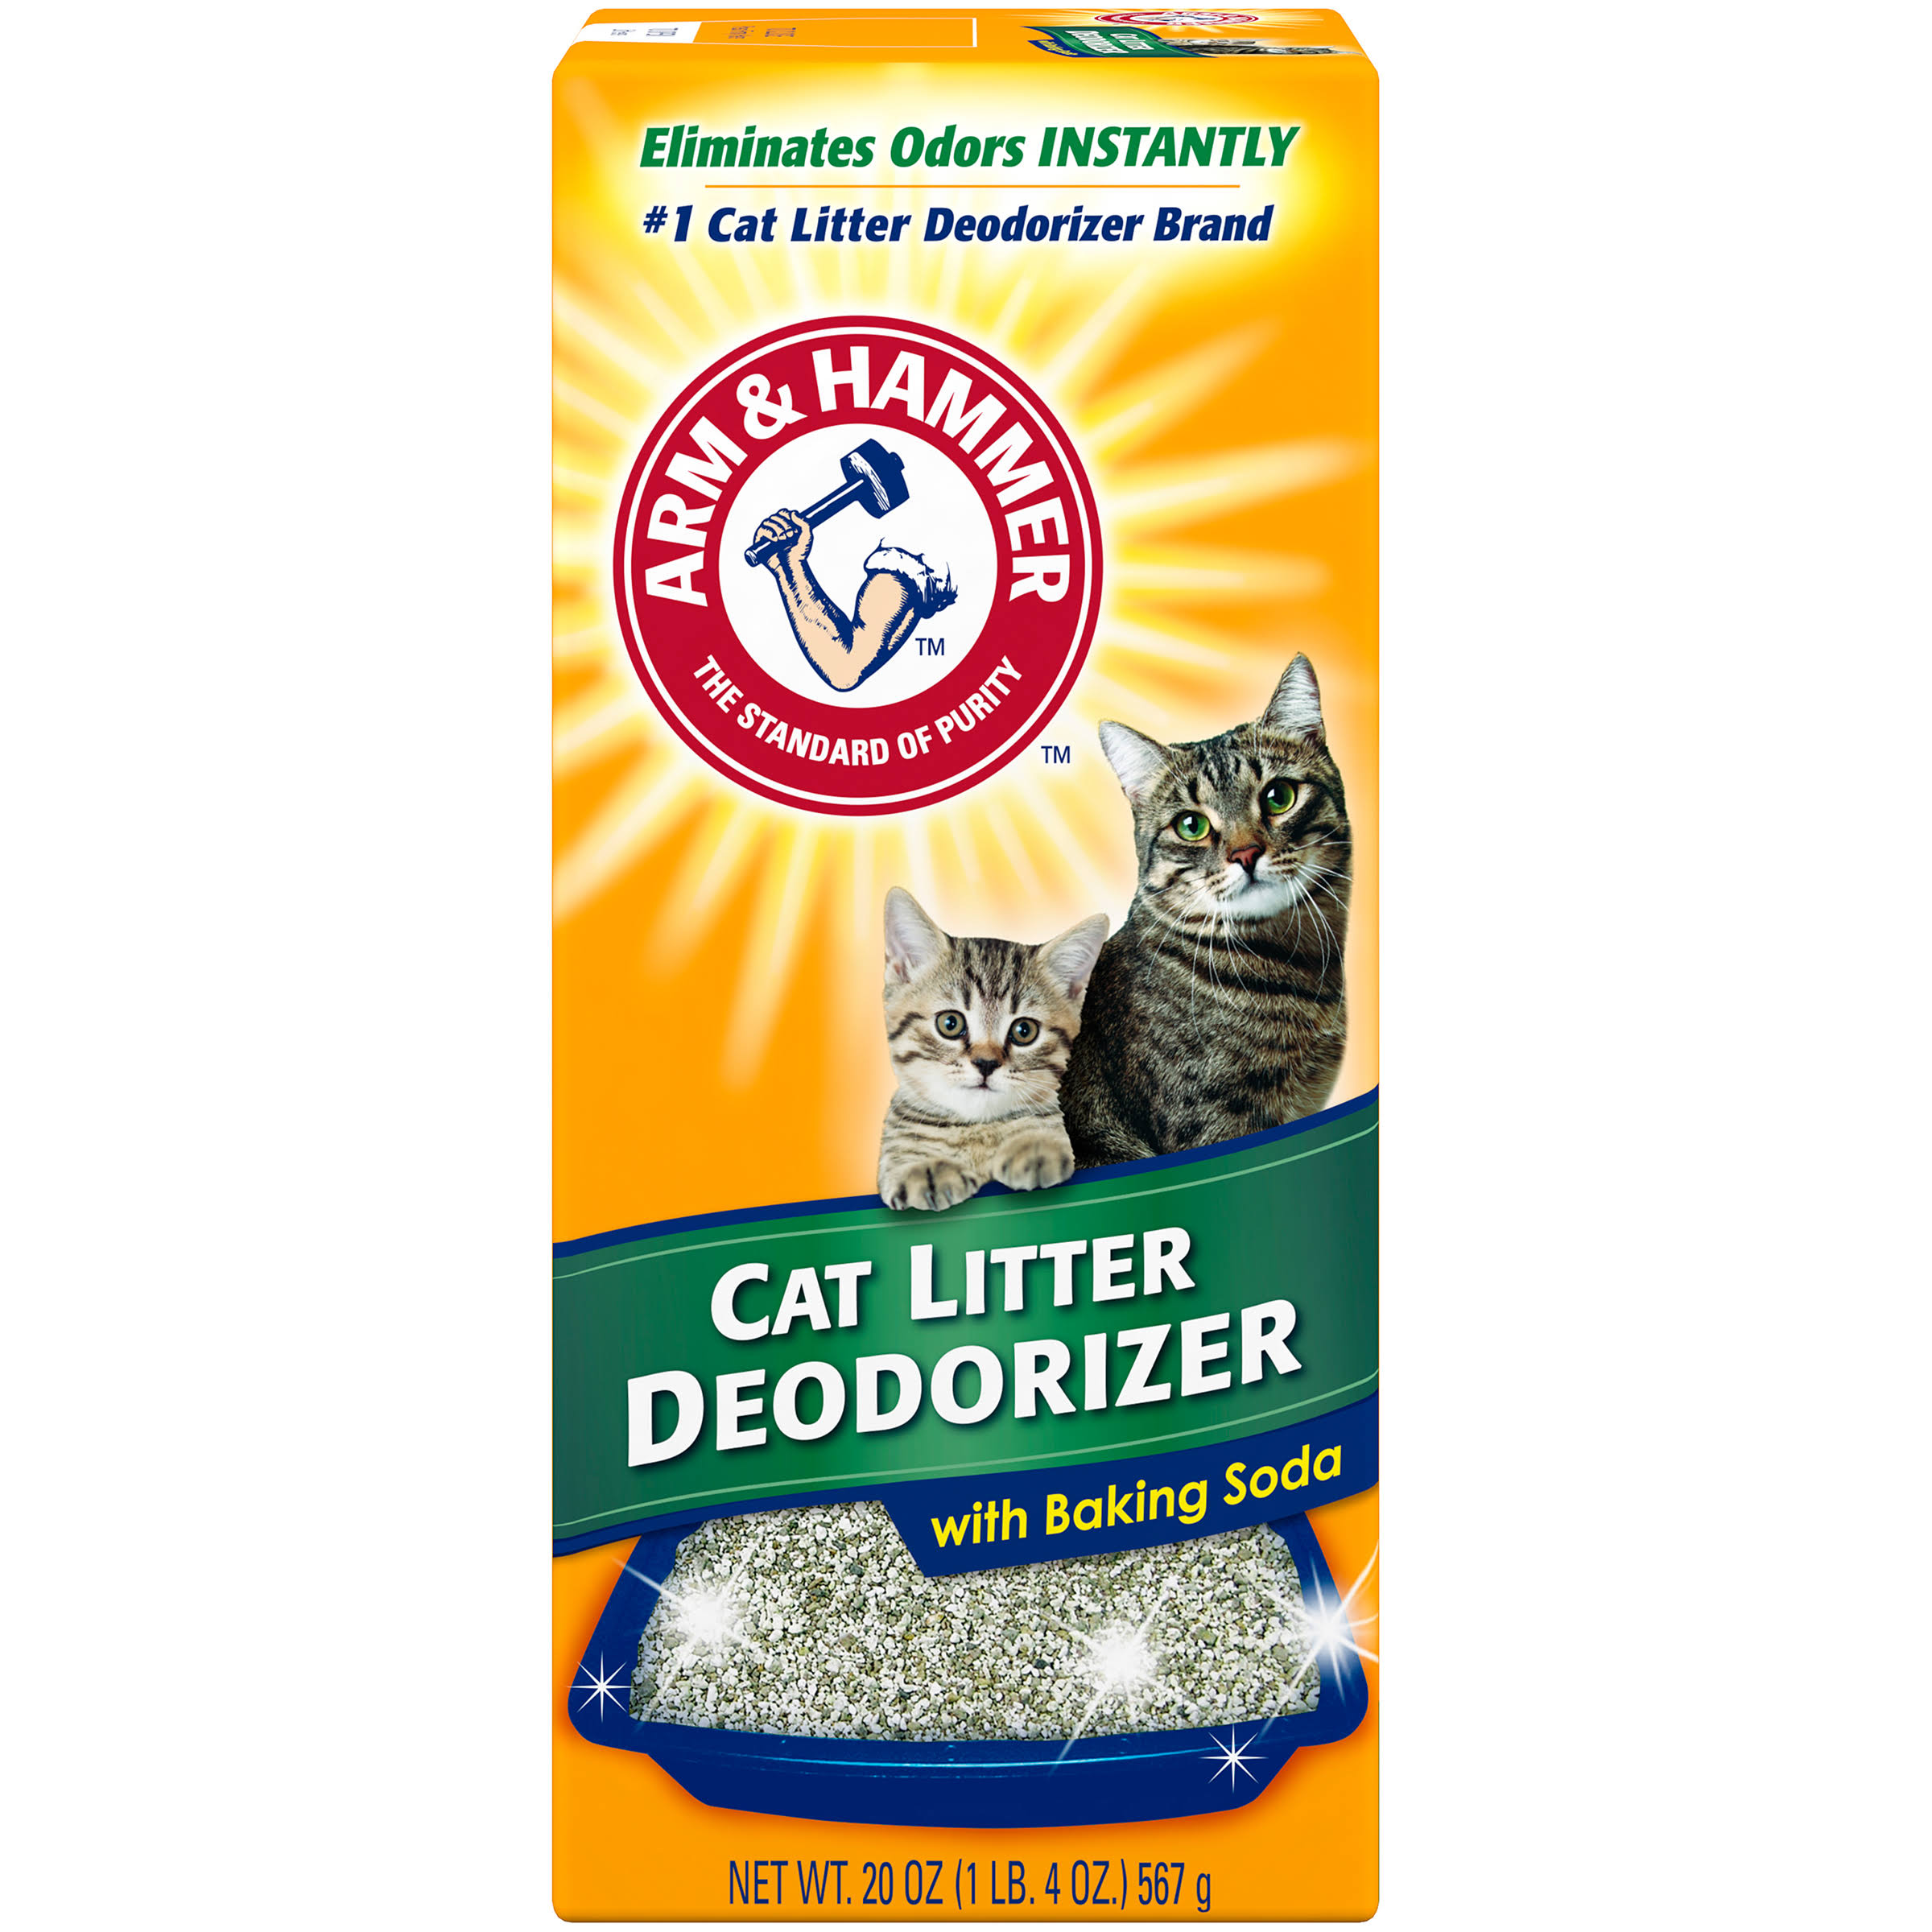 Arm and Hammer Cat Litter Deodorizer - with Baking Soda, 20oz